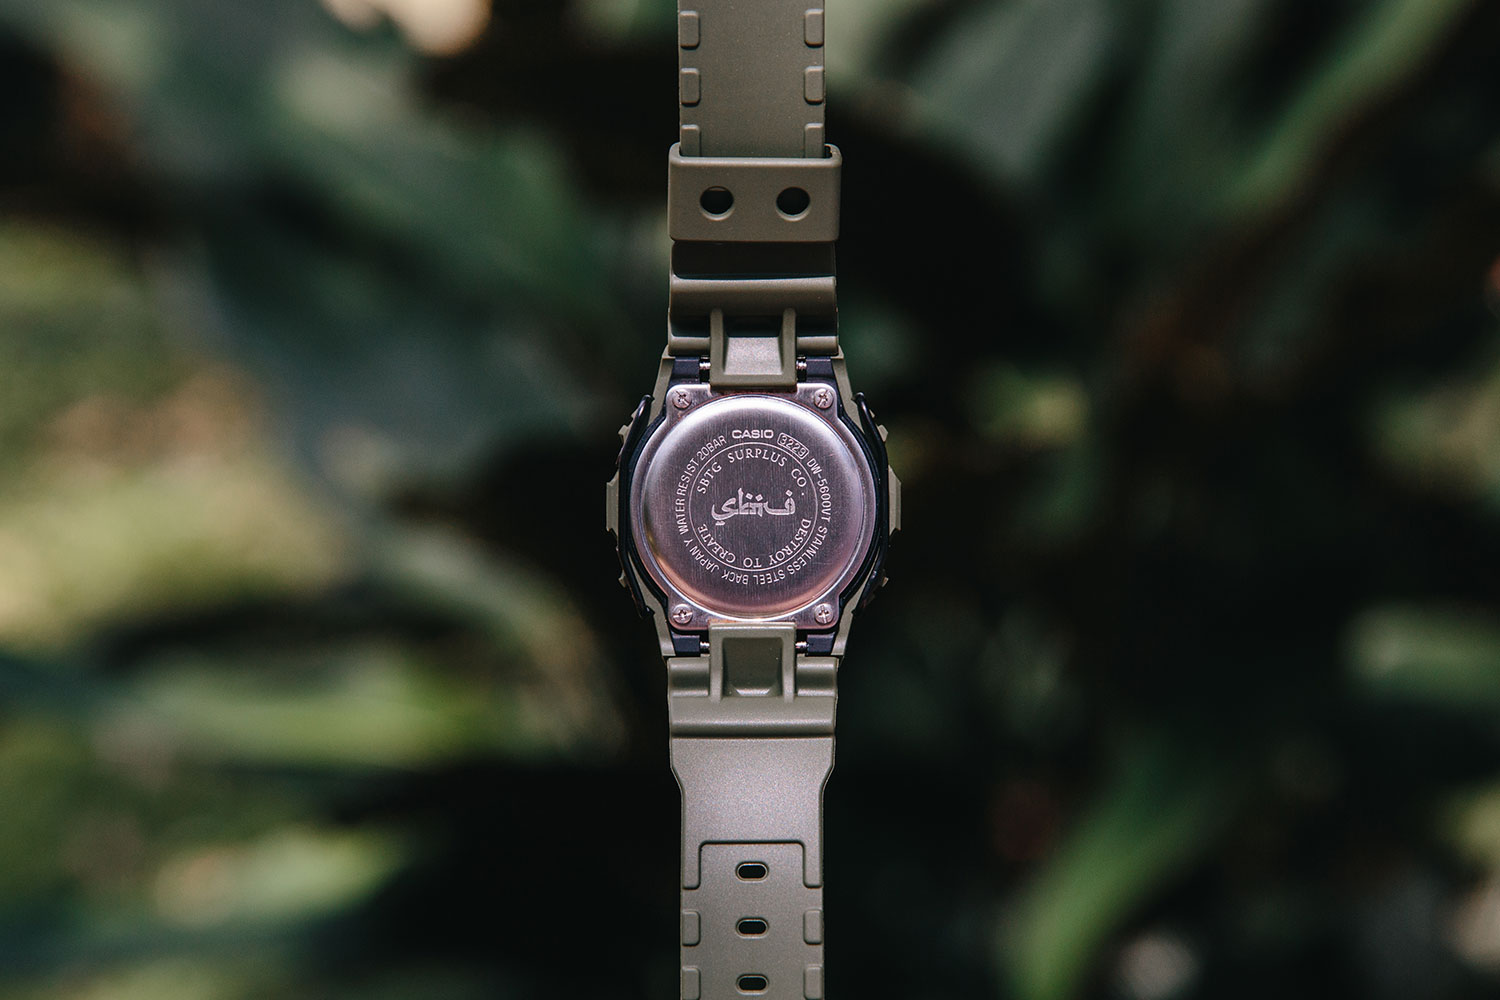 CASIO Releases G-SHOCK X SBTG Limited Edition Timepiece